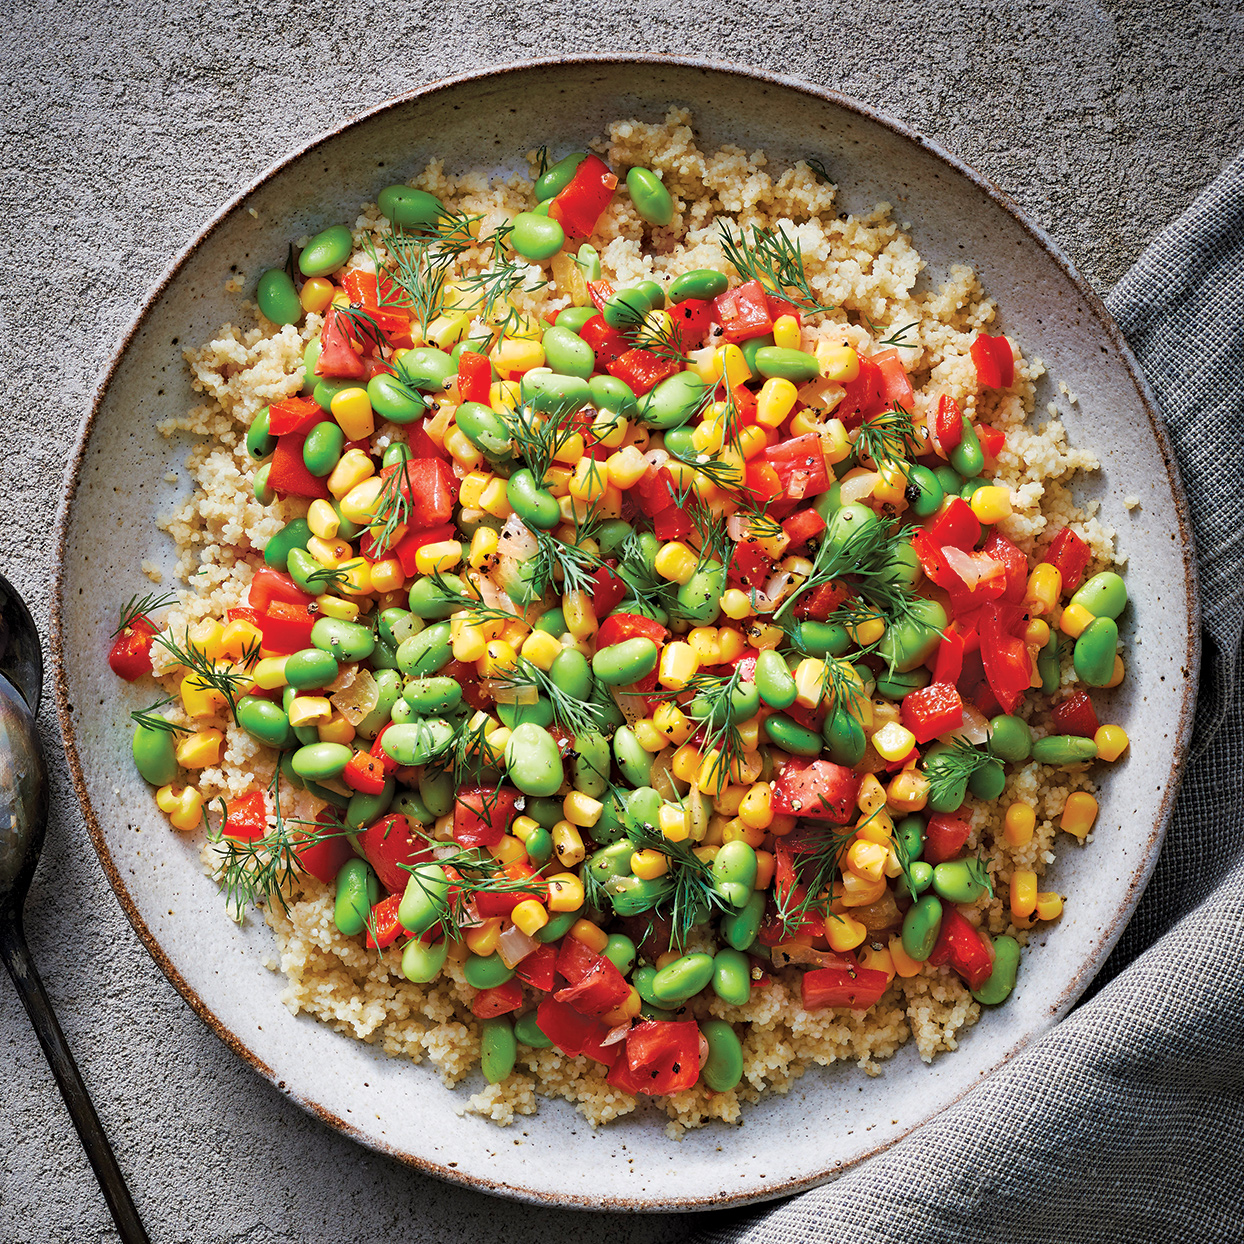 Vegetables and edamame (soybeans) crown a bed of whole-wheat couscous for a hearty, healthy meal. You can use fresh-shelled edamame and fresh corn, but using the frozen varieties saves time and produces the same delicious results.